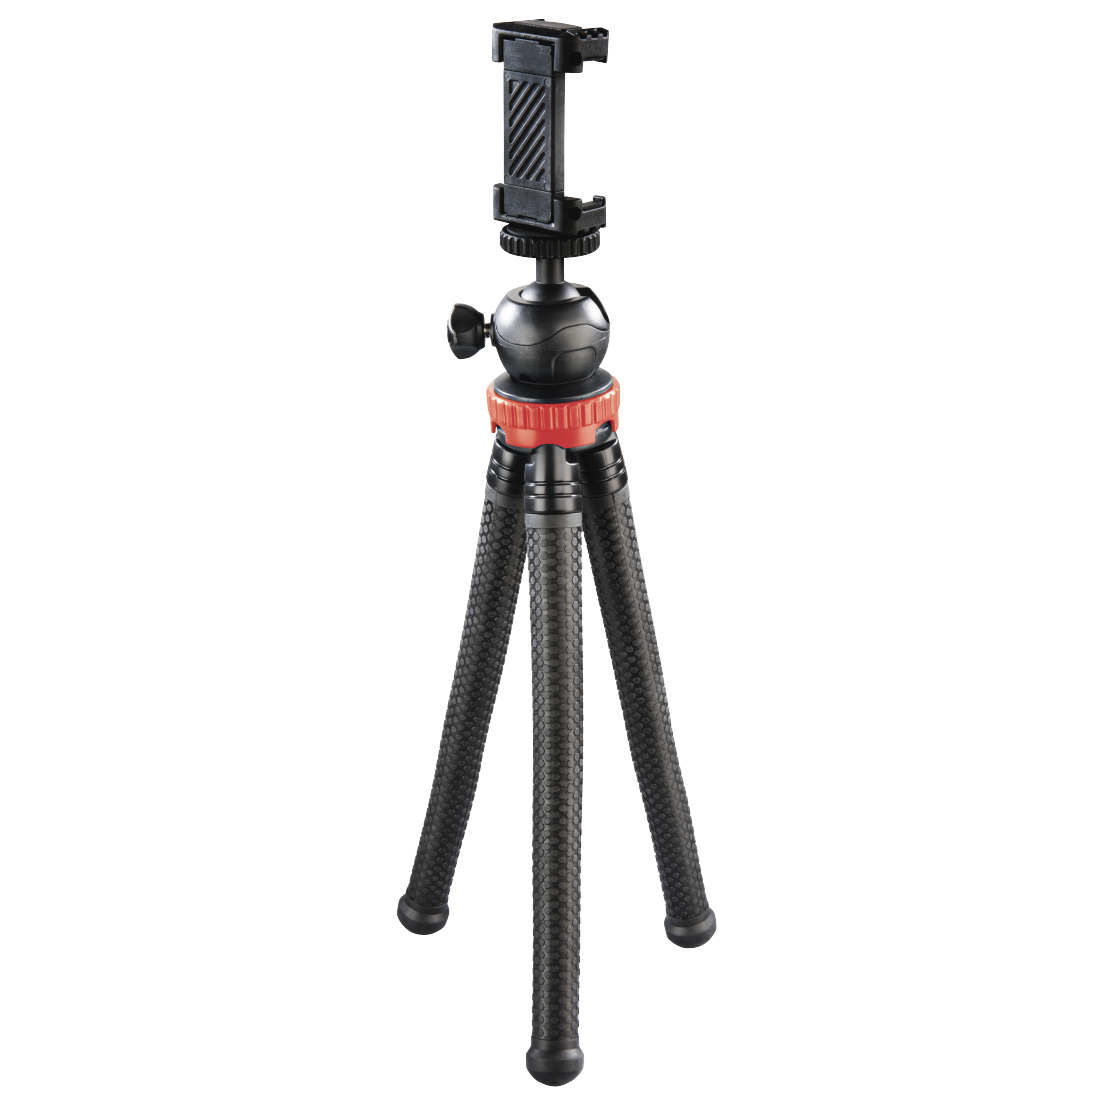 abx High-Res Image - Hama, FlexPro Tripod for Smartphone, GoPro and Photo Cameras, 27 cm, red